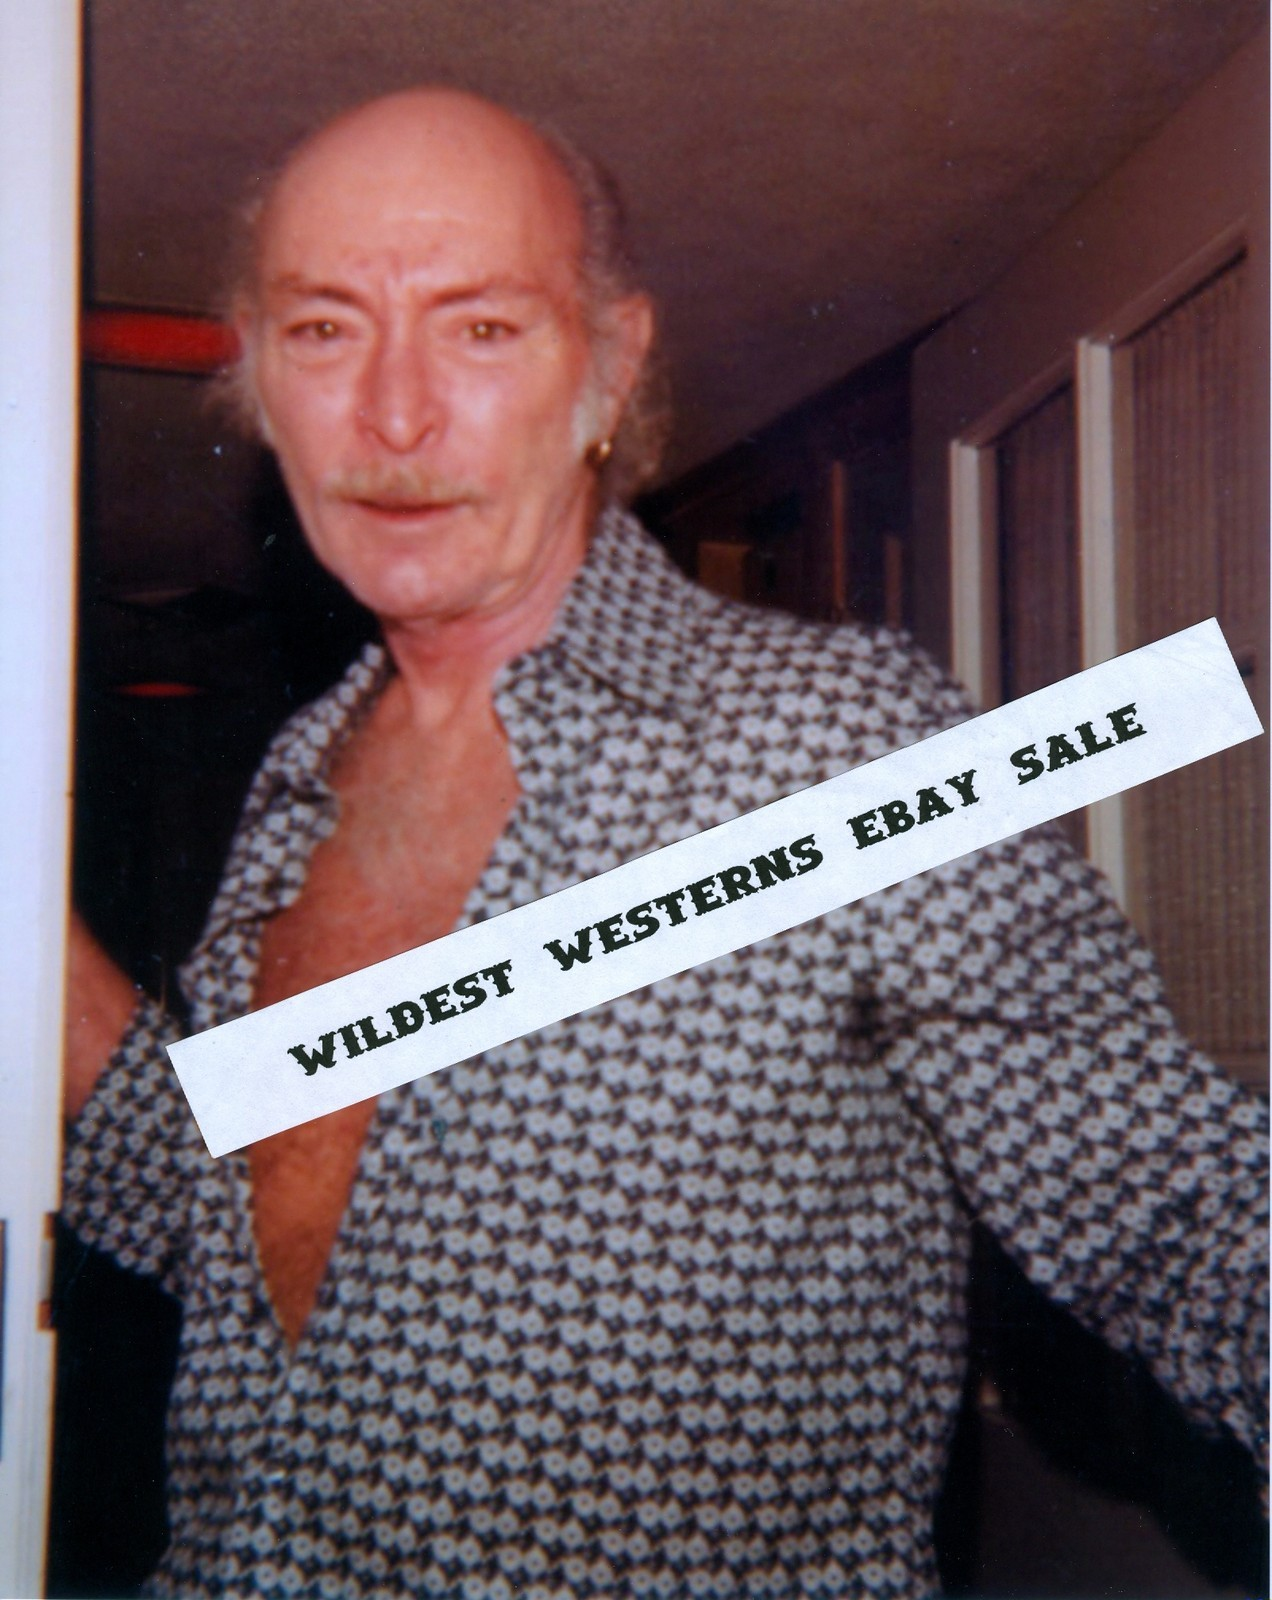 TheBad.net - The Lee Van Cleef Blog: eBay Watch: Candid at Home Photo